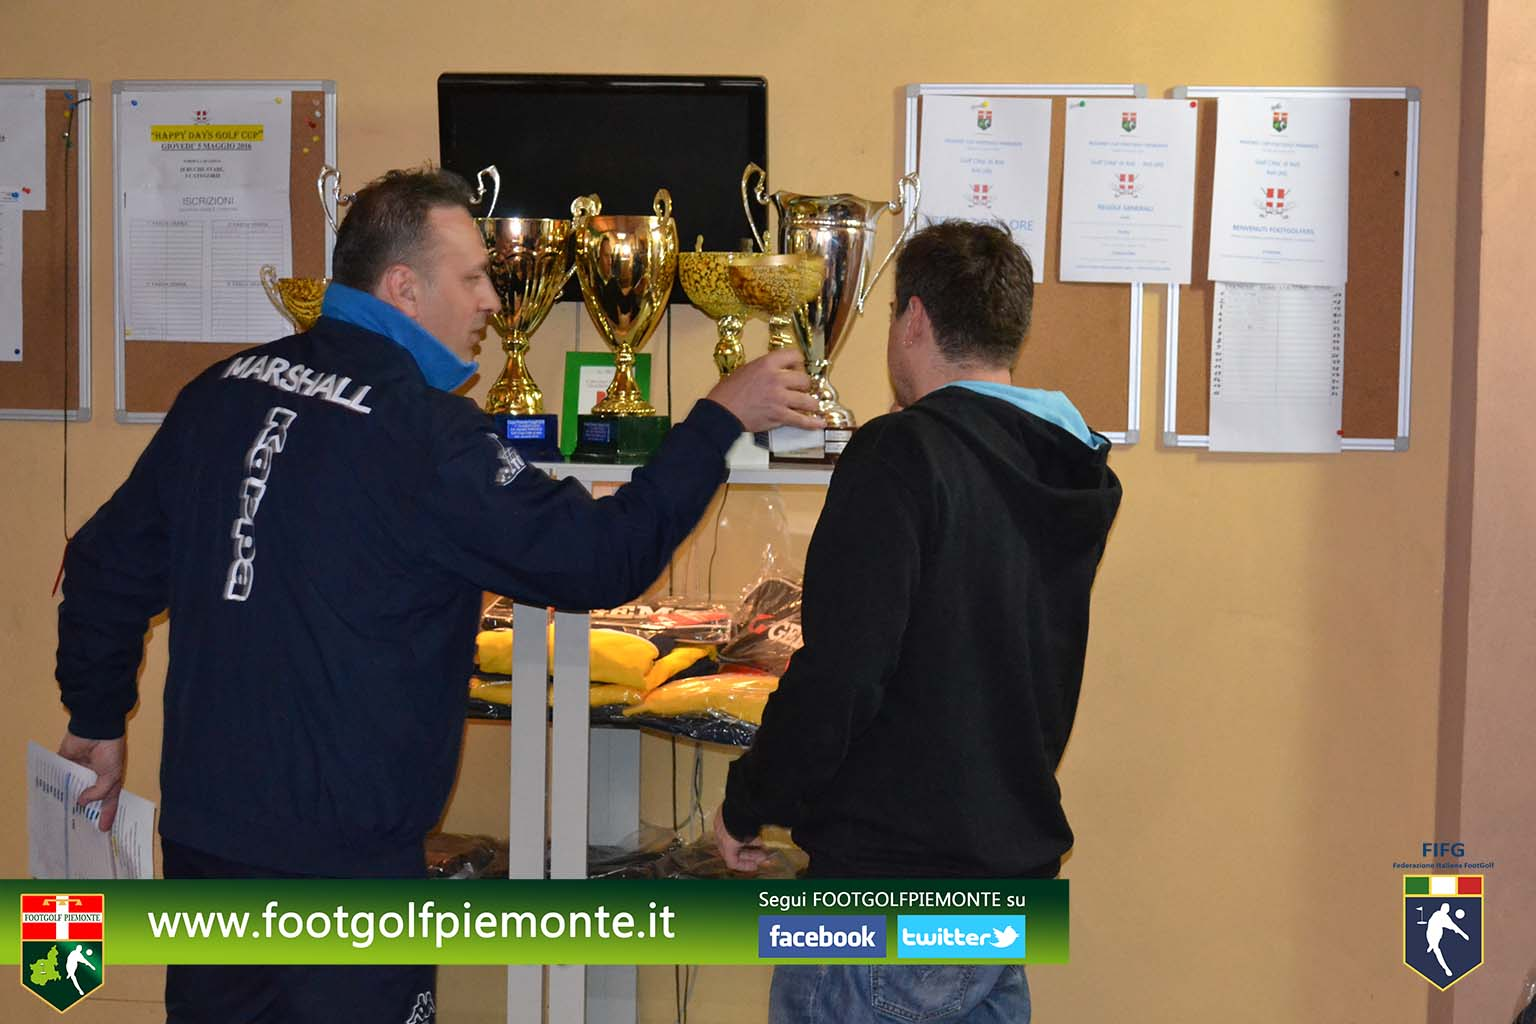 FOTO 9 Regions' Cup Footgolf Piemonte 2016 Golf Città di Asti (At) 30apr16-114